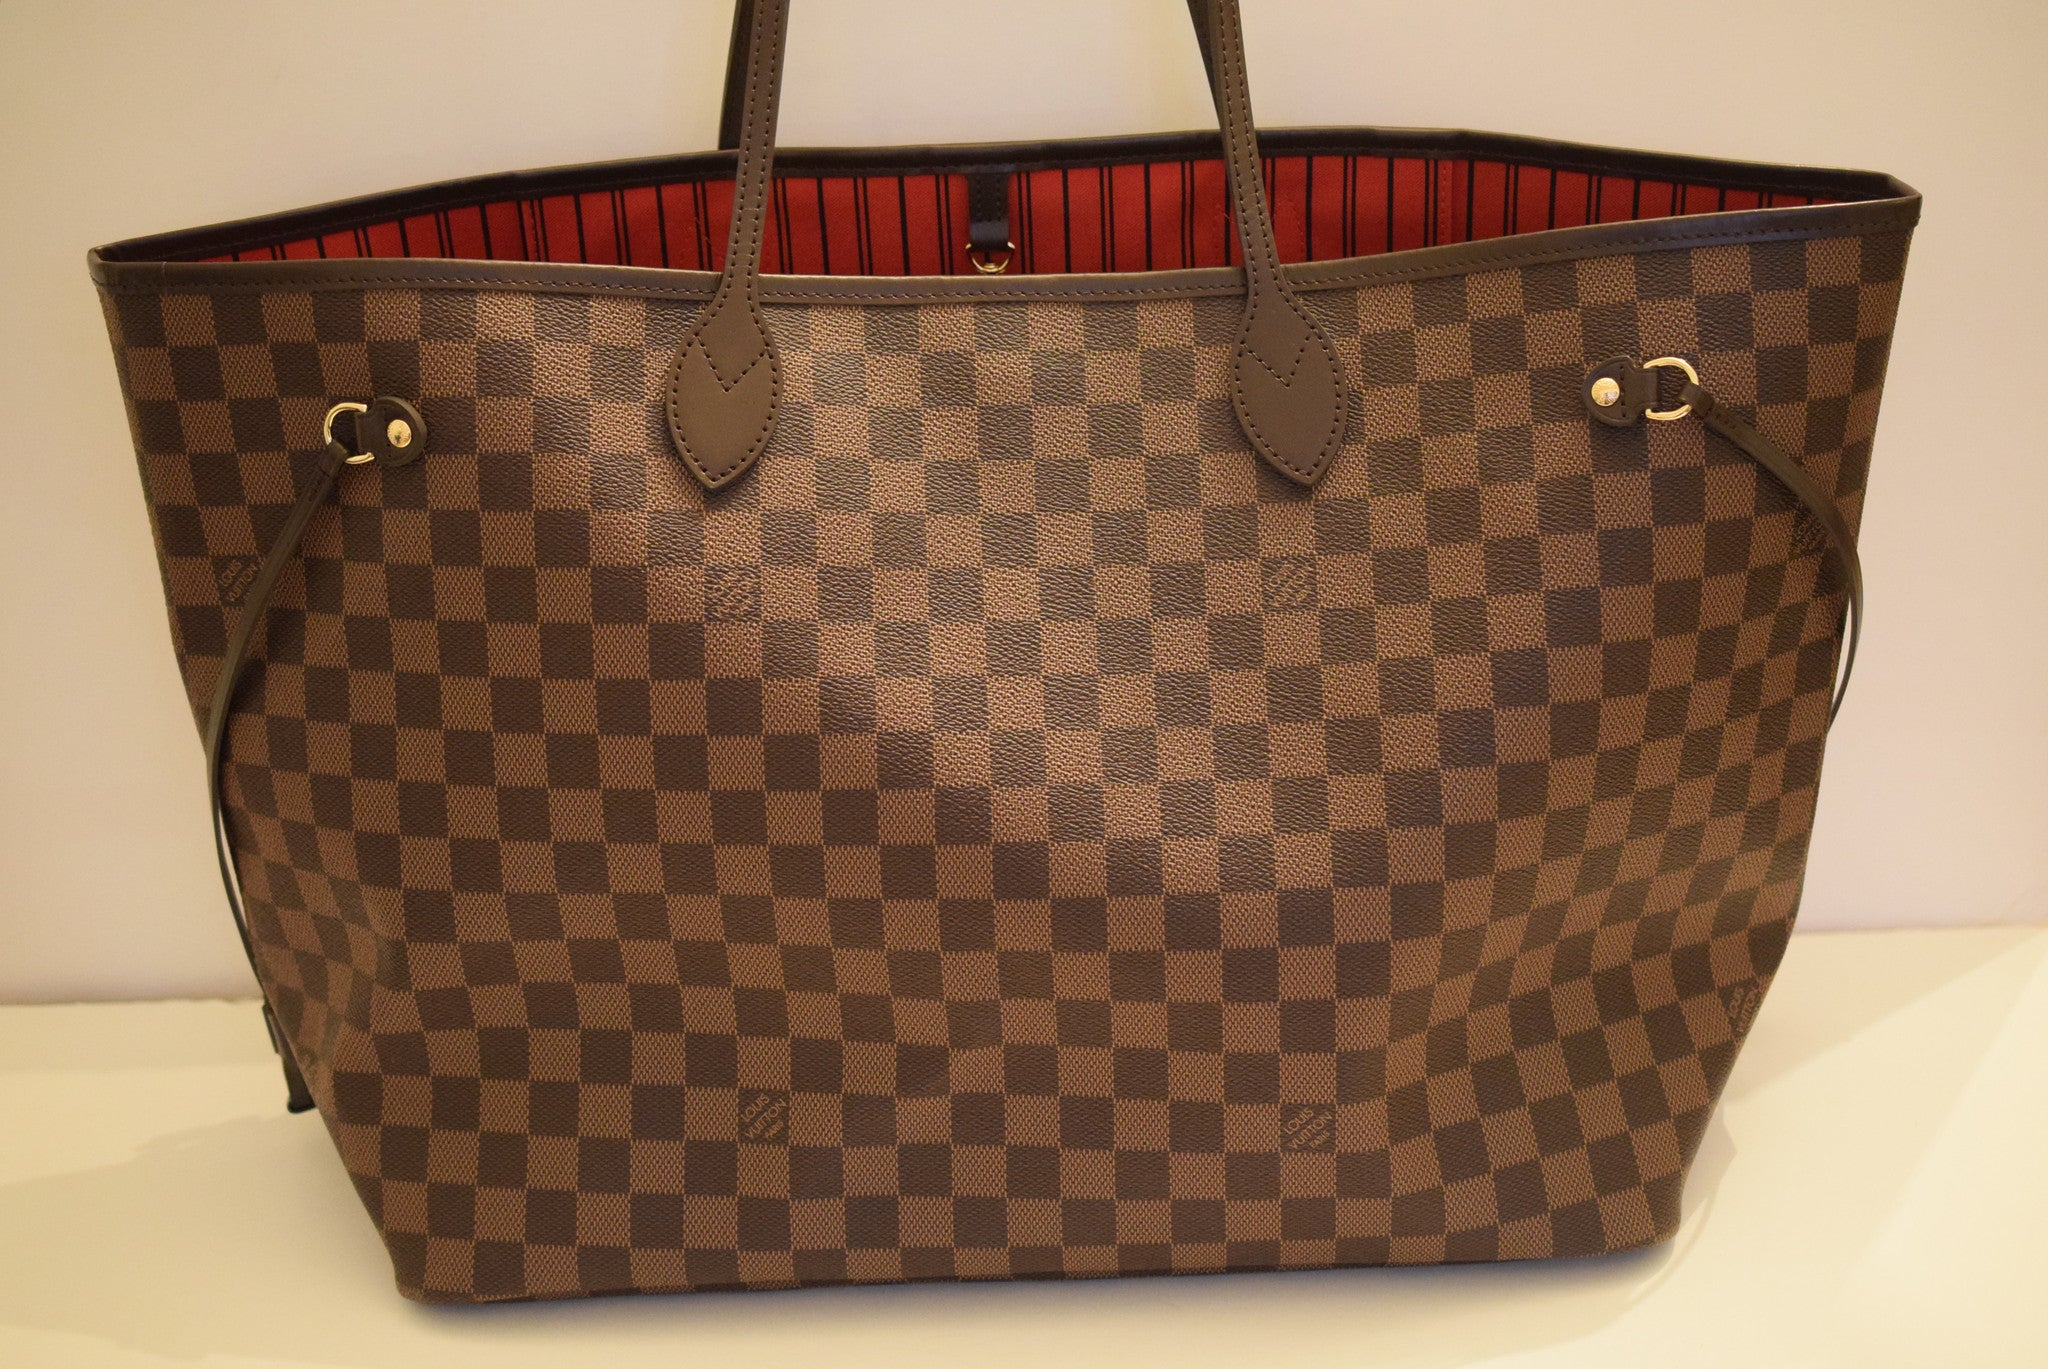 728b80536556 LOUIS VUITTON Brand New 2016! With Receipts Neverfull Gm (largest) In -  Timeless Gallery